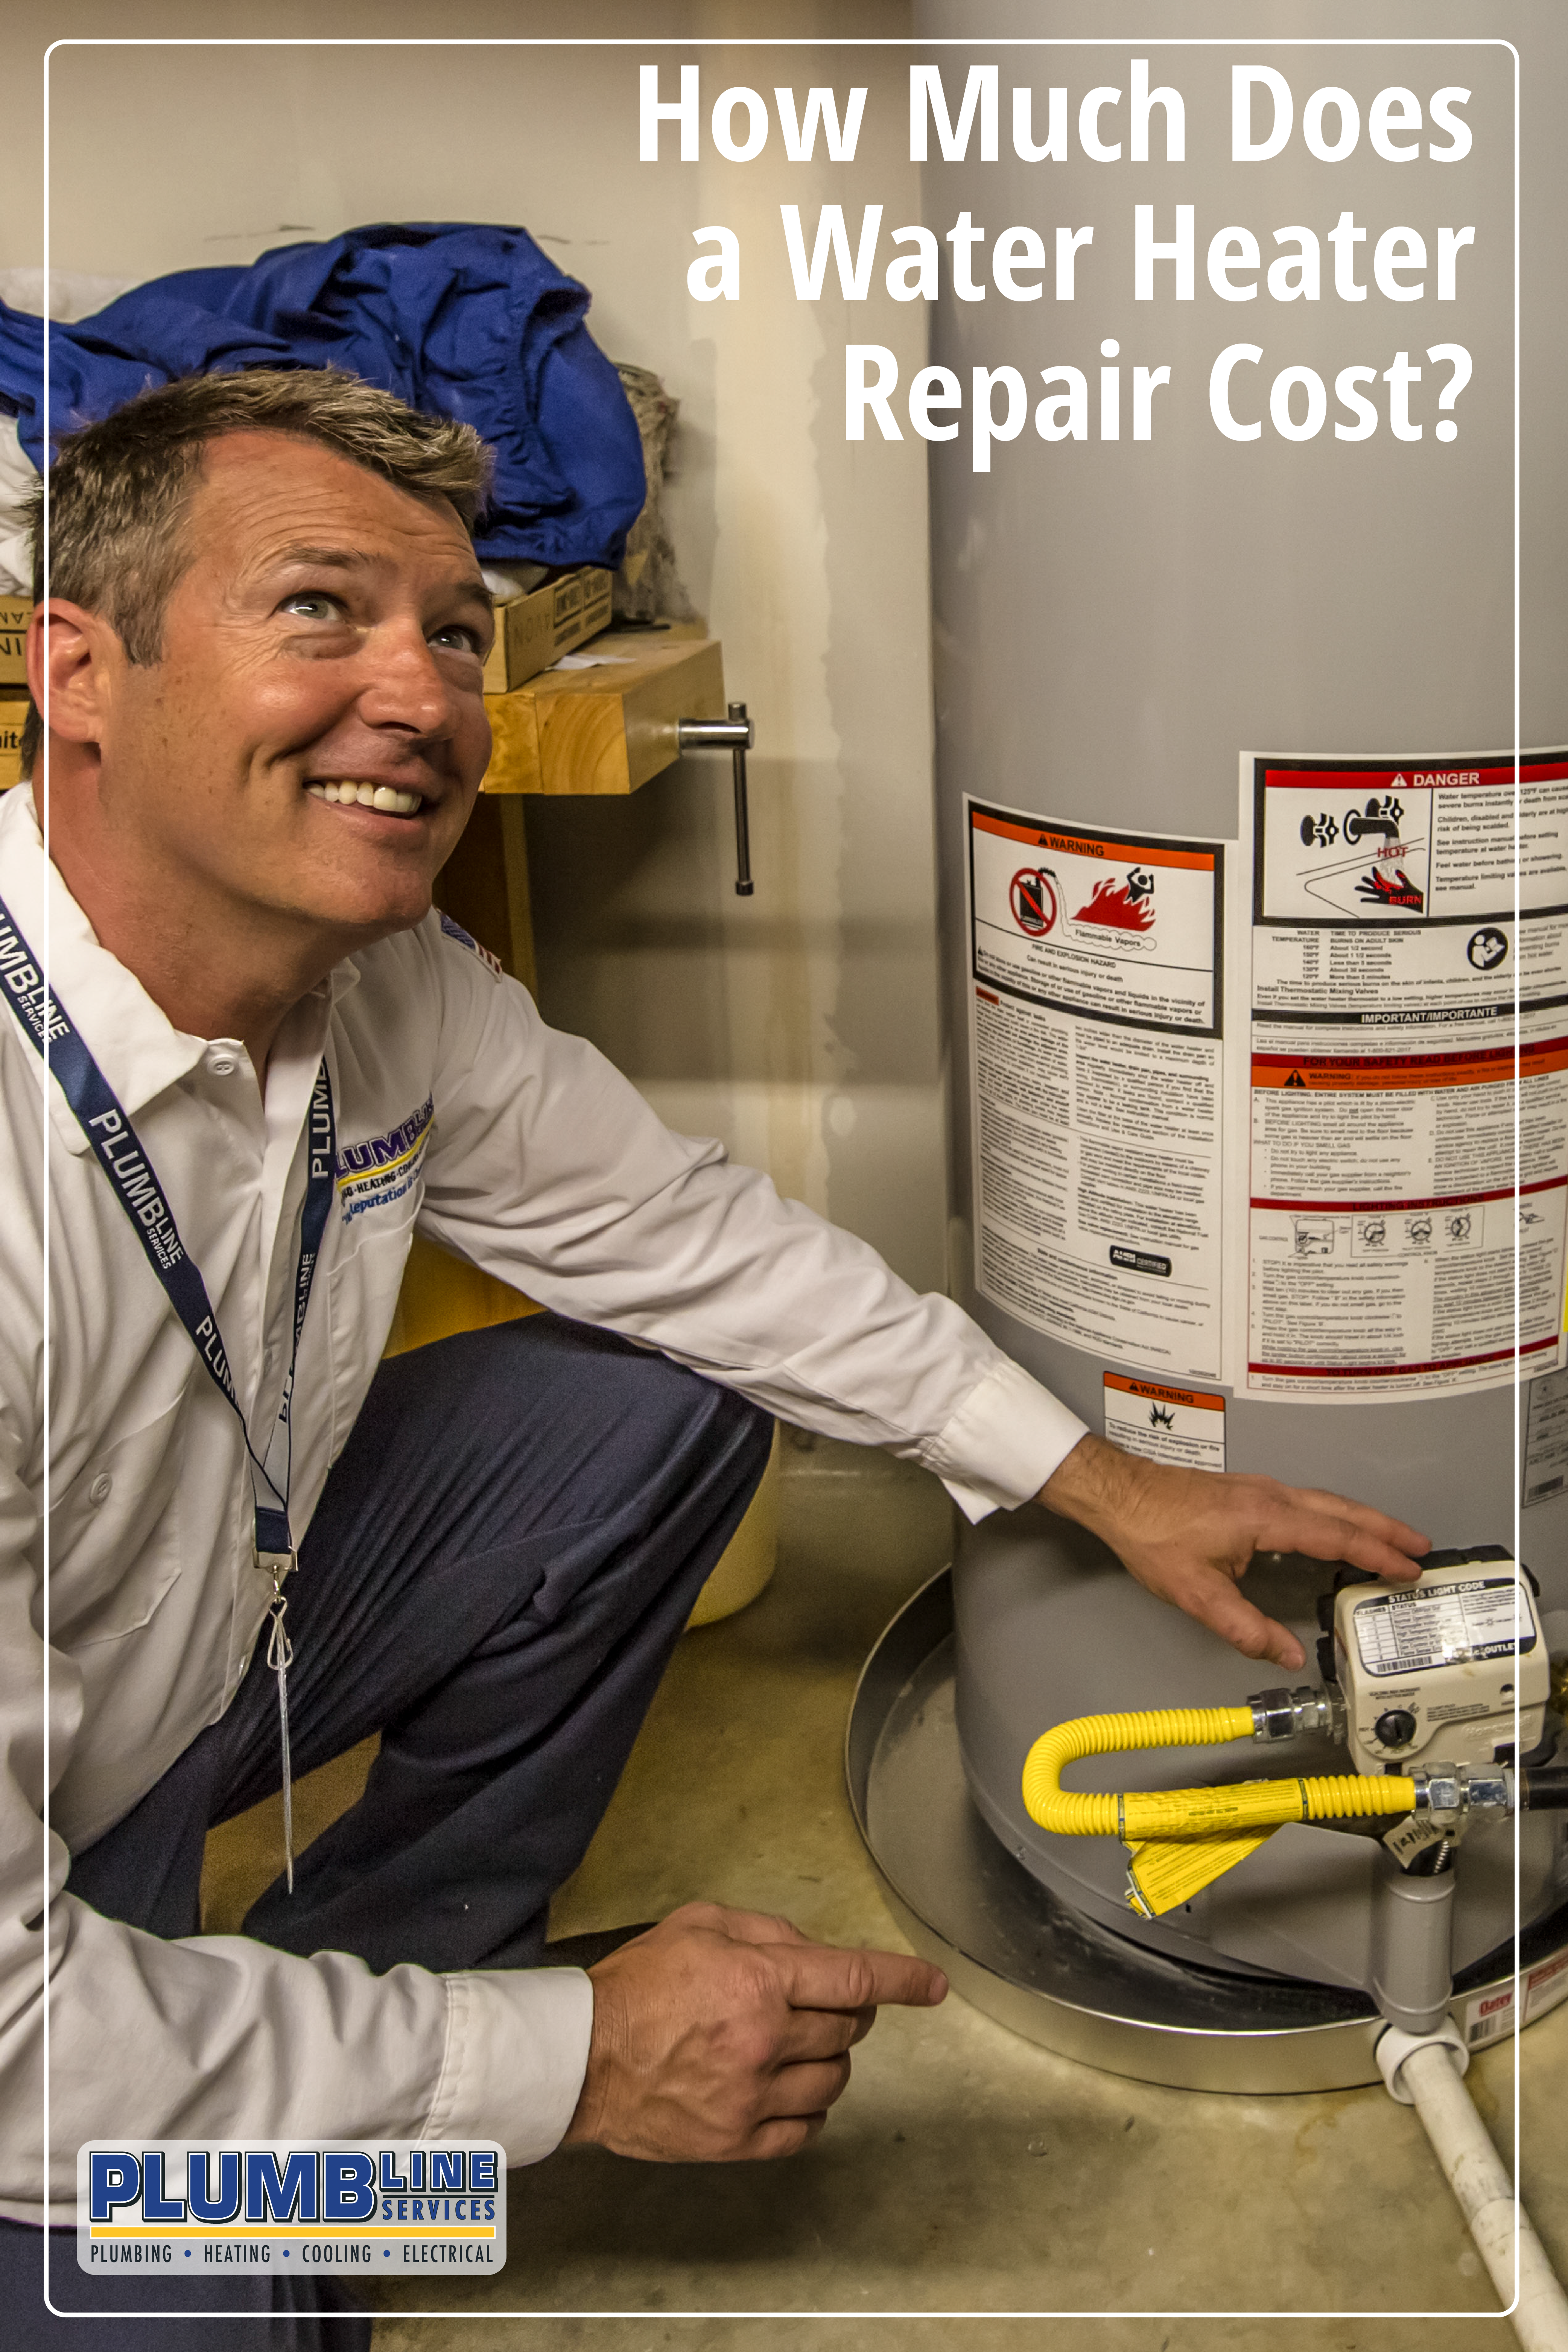 The Cost Of A Water Heater Repair In The Denver Area Usually Ranges From 150 To Over 500 Water Heater Repair Water Heater Heater